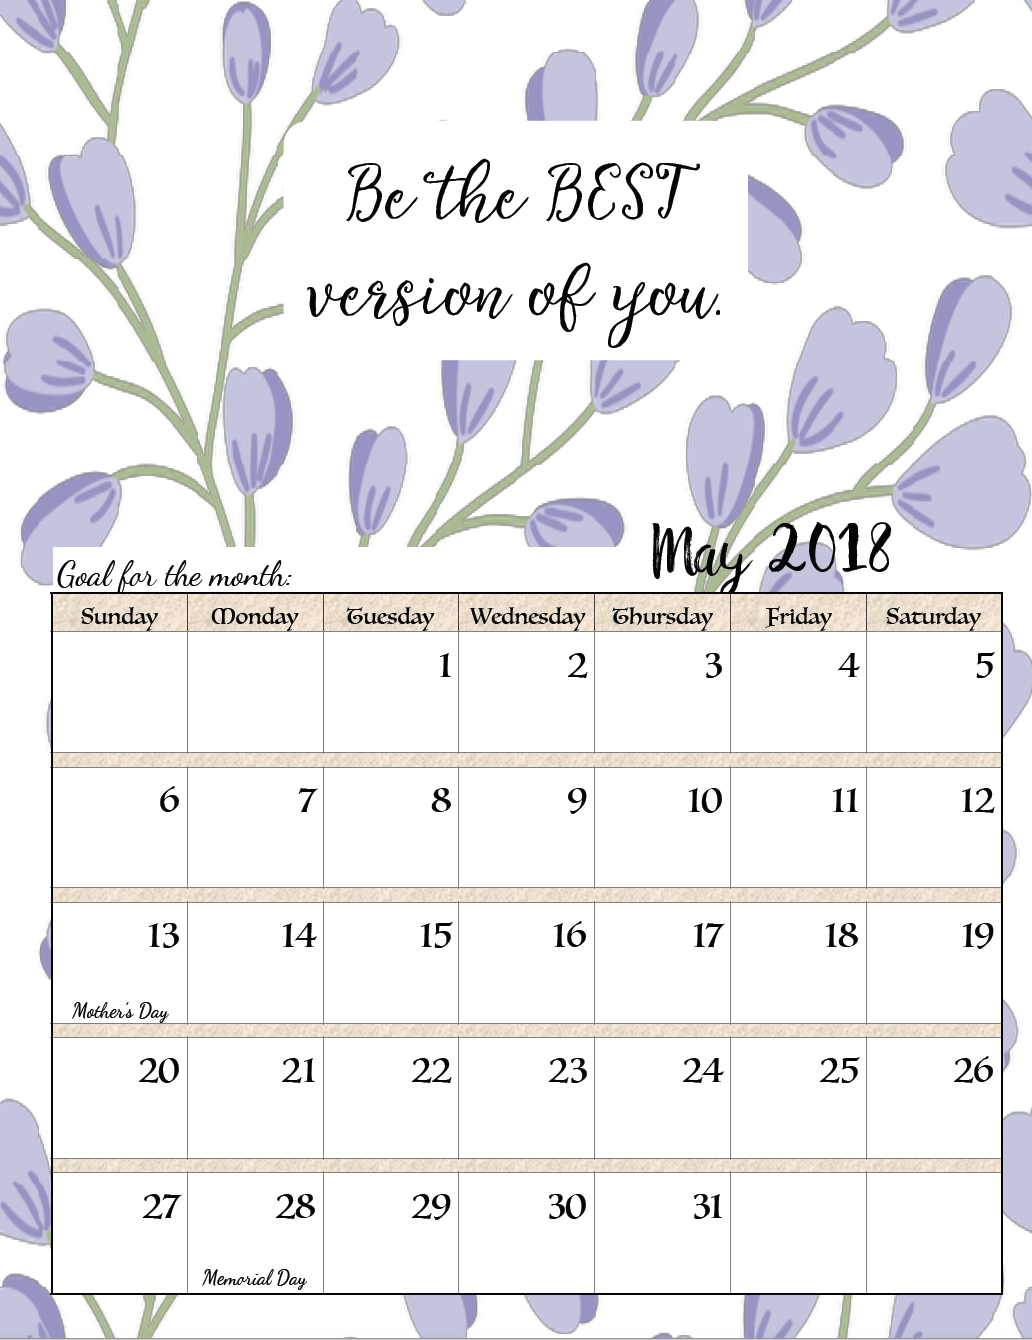 FREE Printable 2018 Monthly Motivational Calendars. Space for setting goals, different motivational quote each month, holidays marked, & links to more free printable calendars.